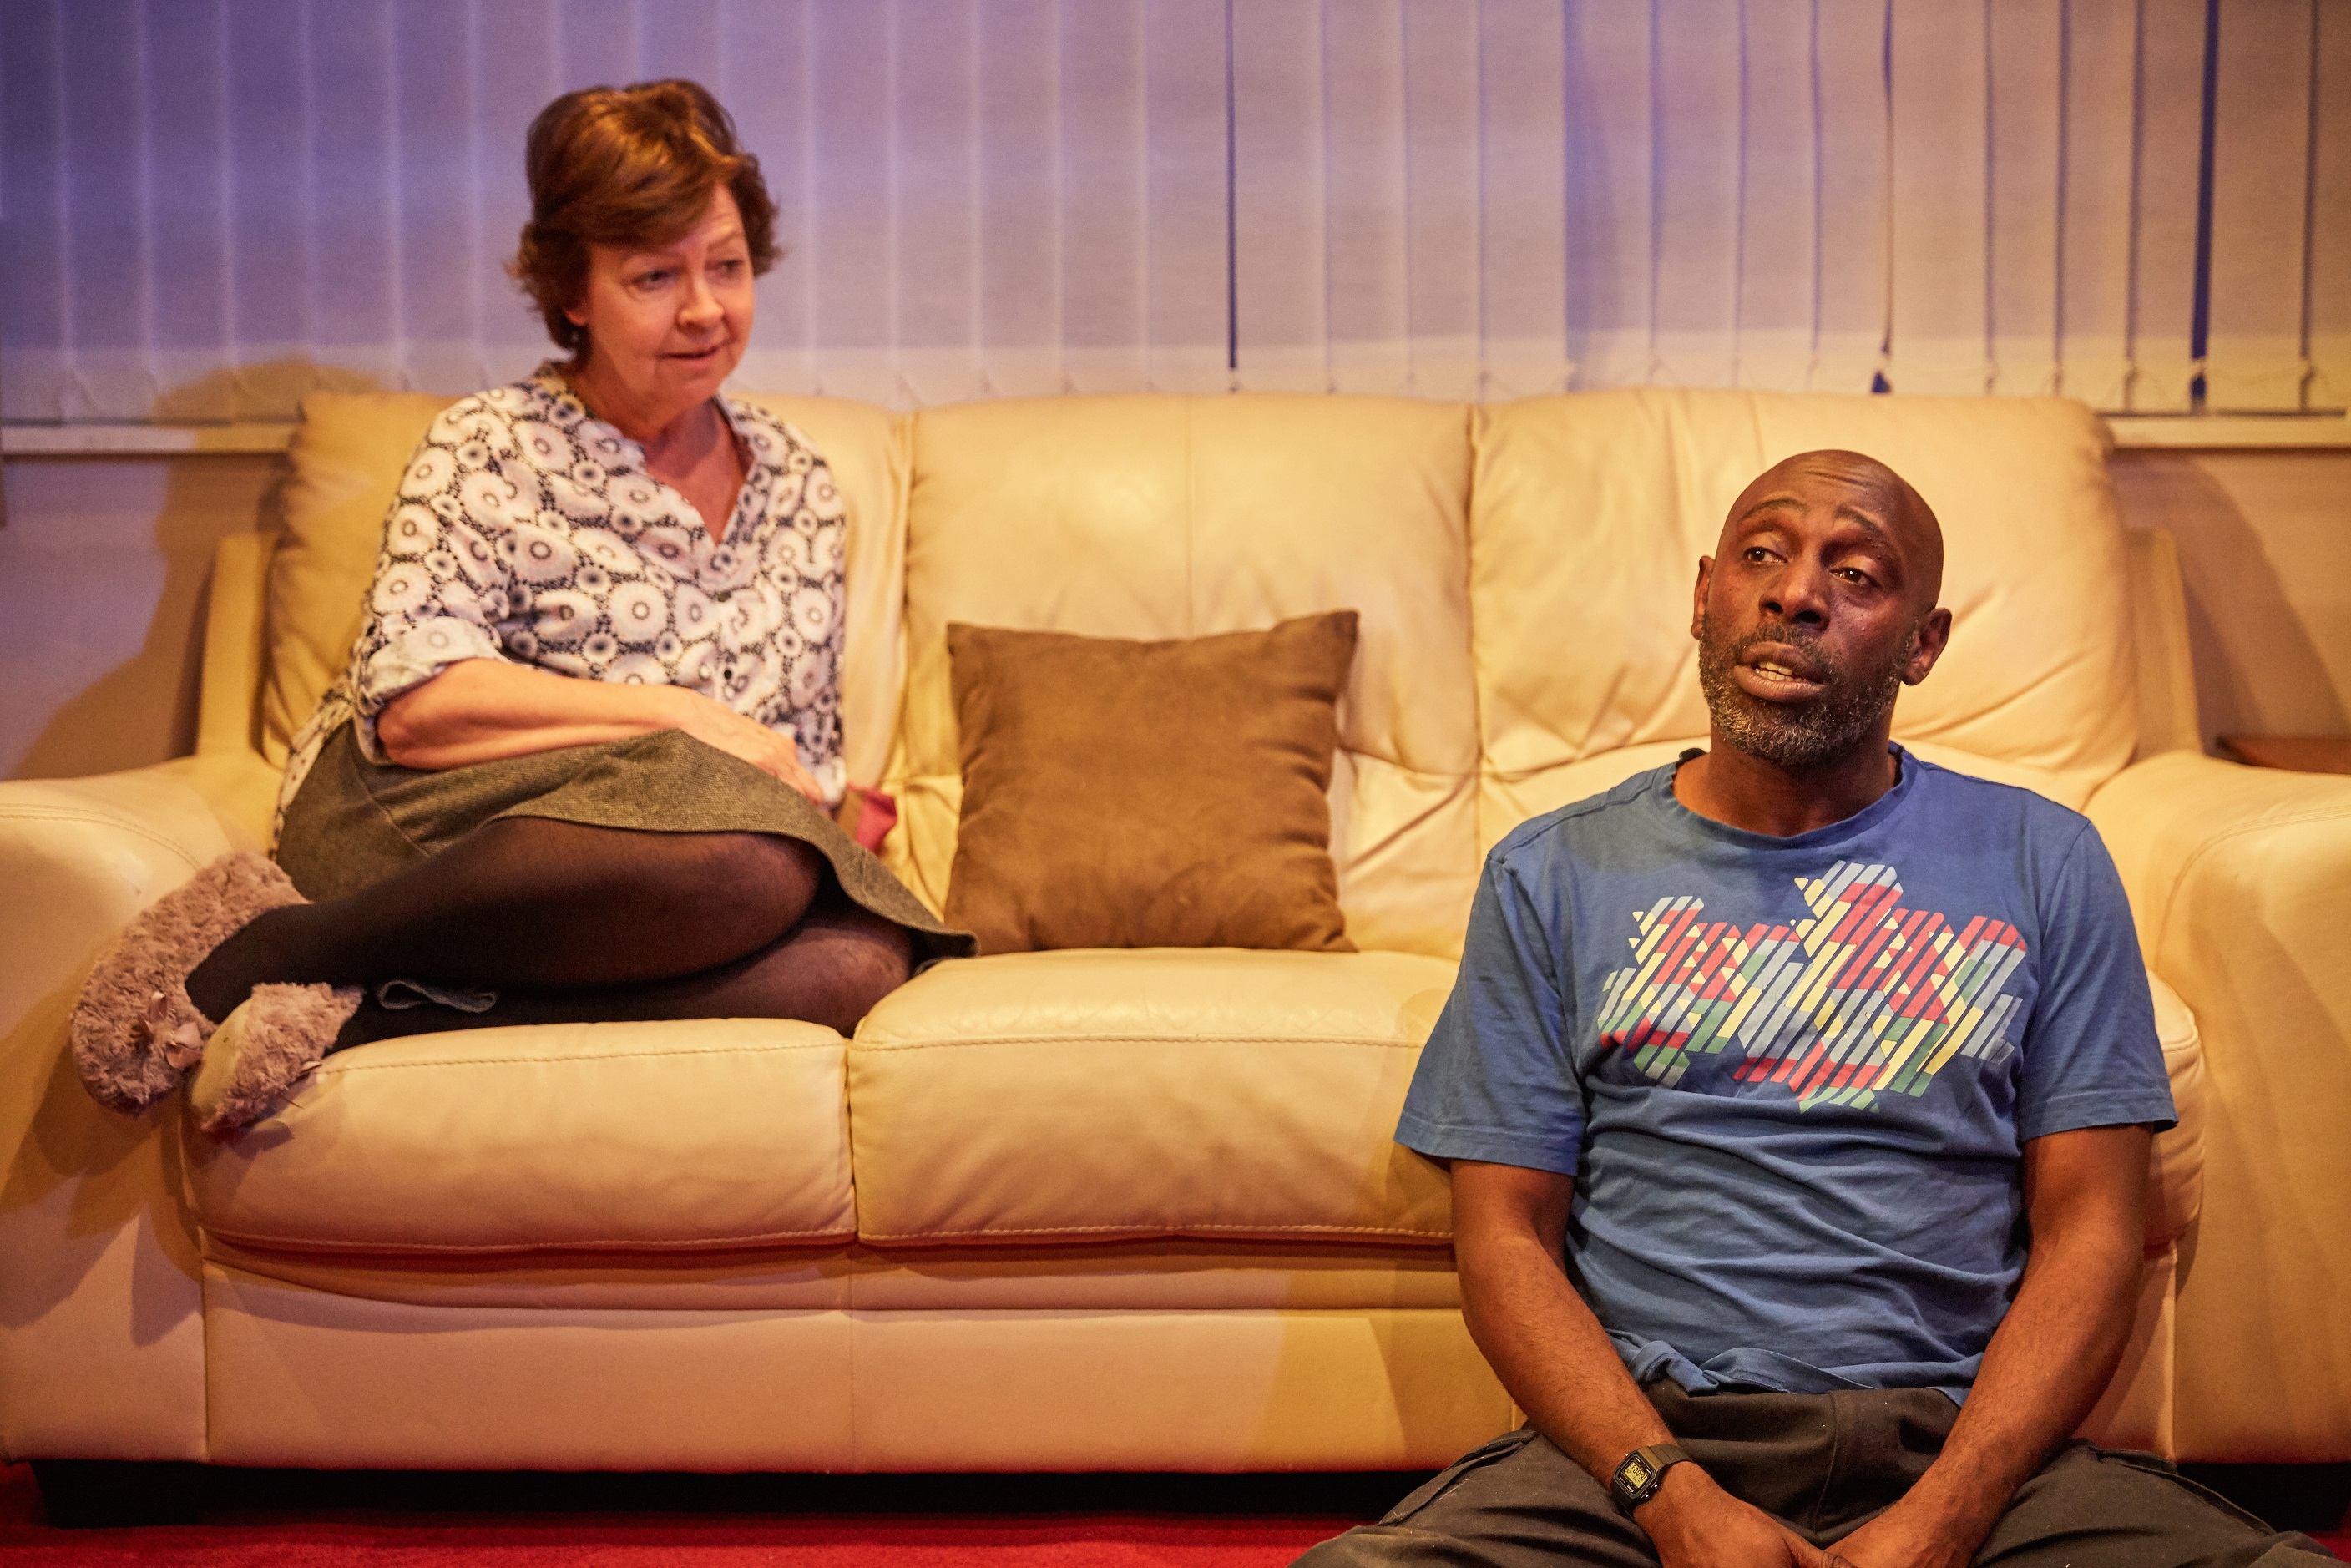 BWW Review: WHILE WE'RE HERE, Bush Theatre